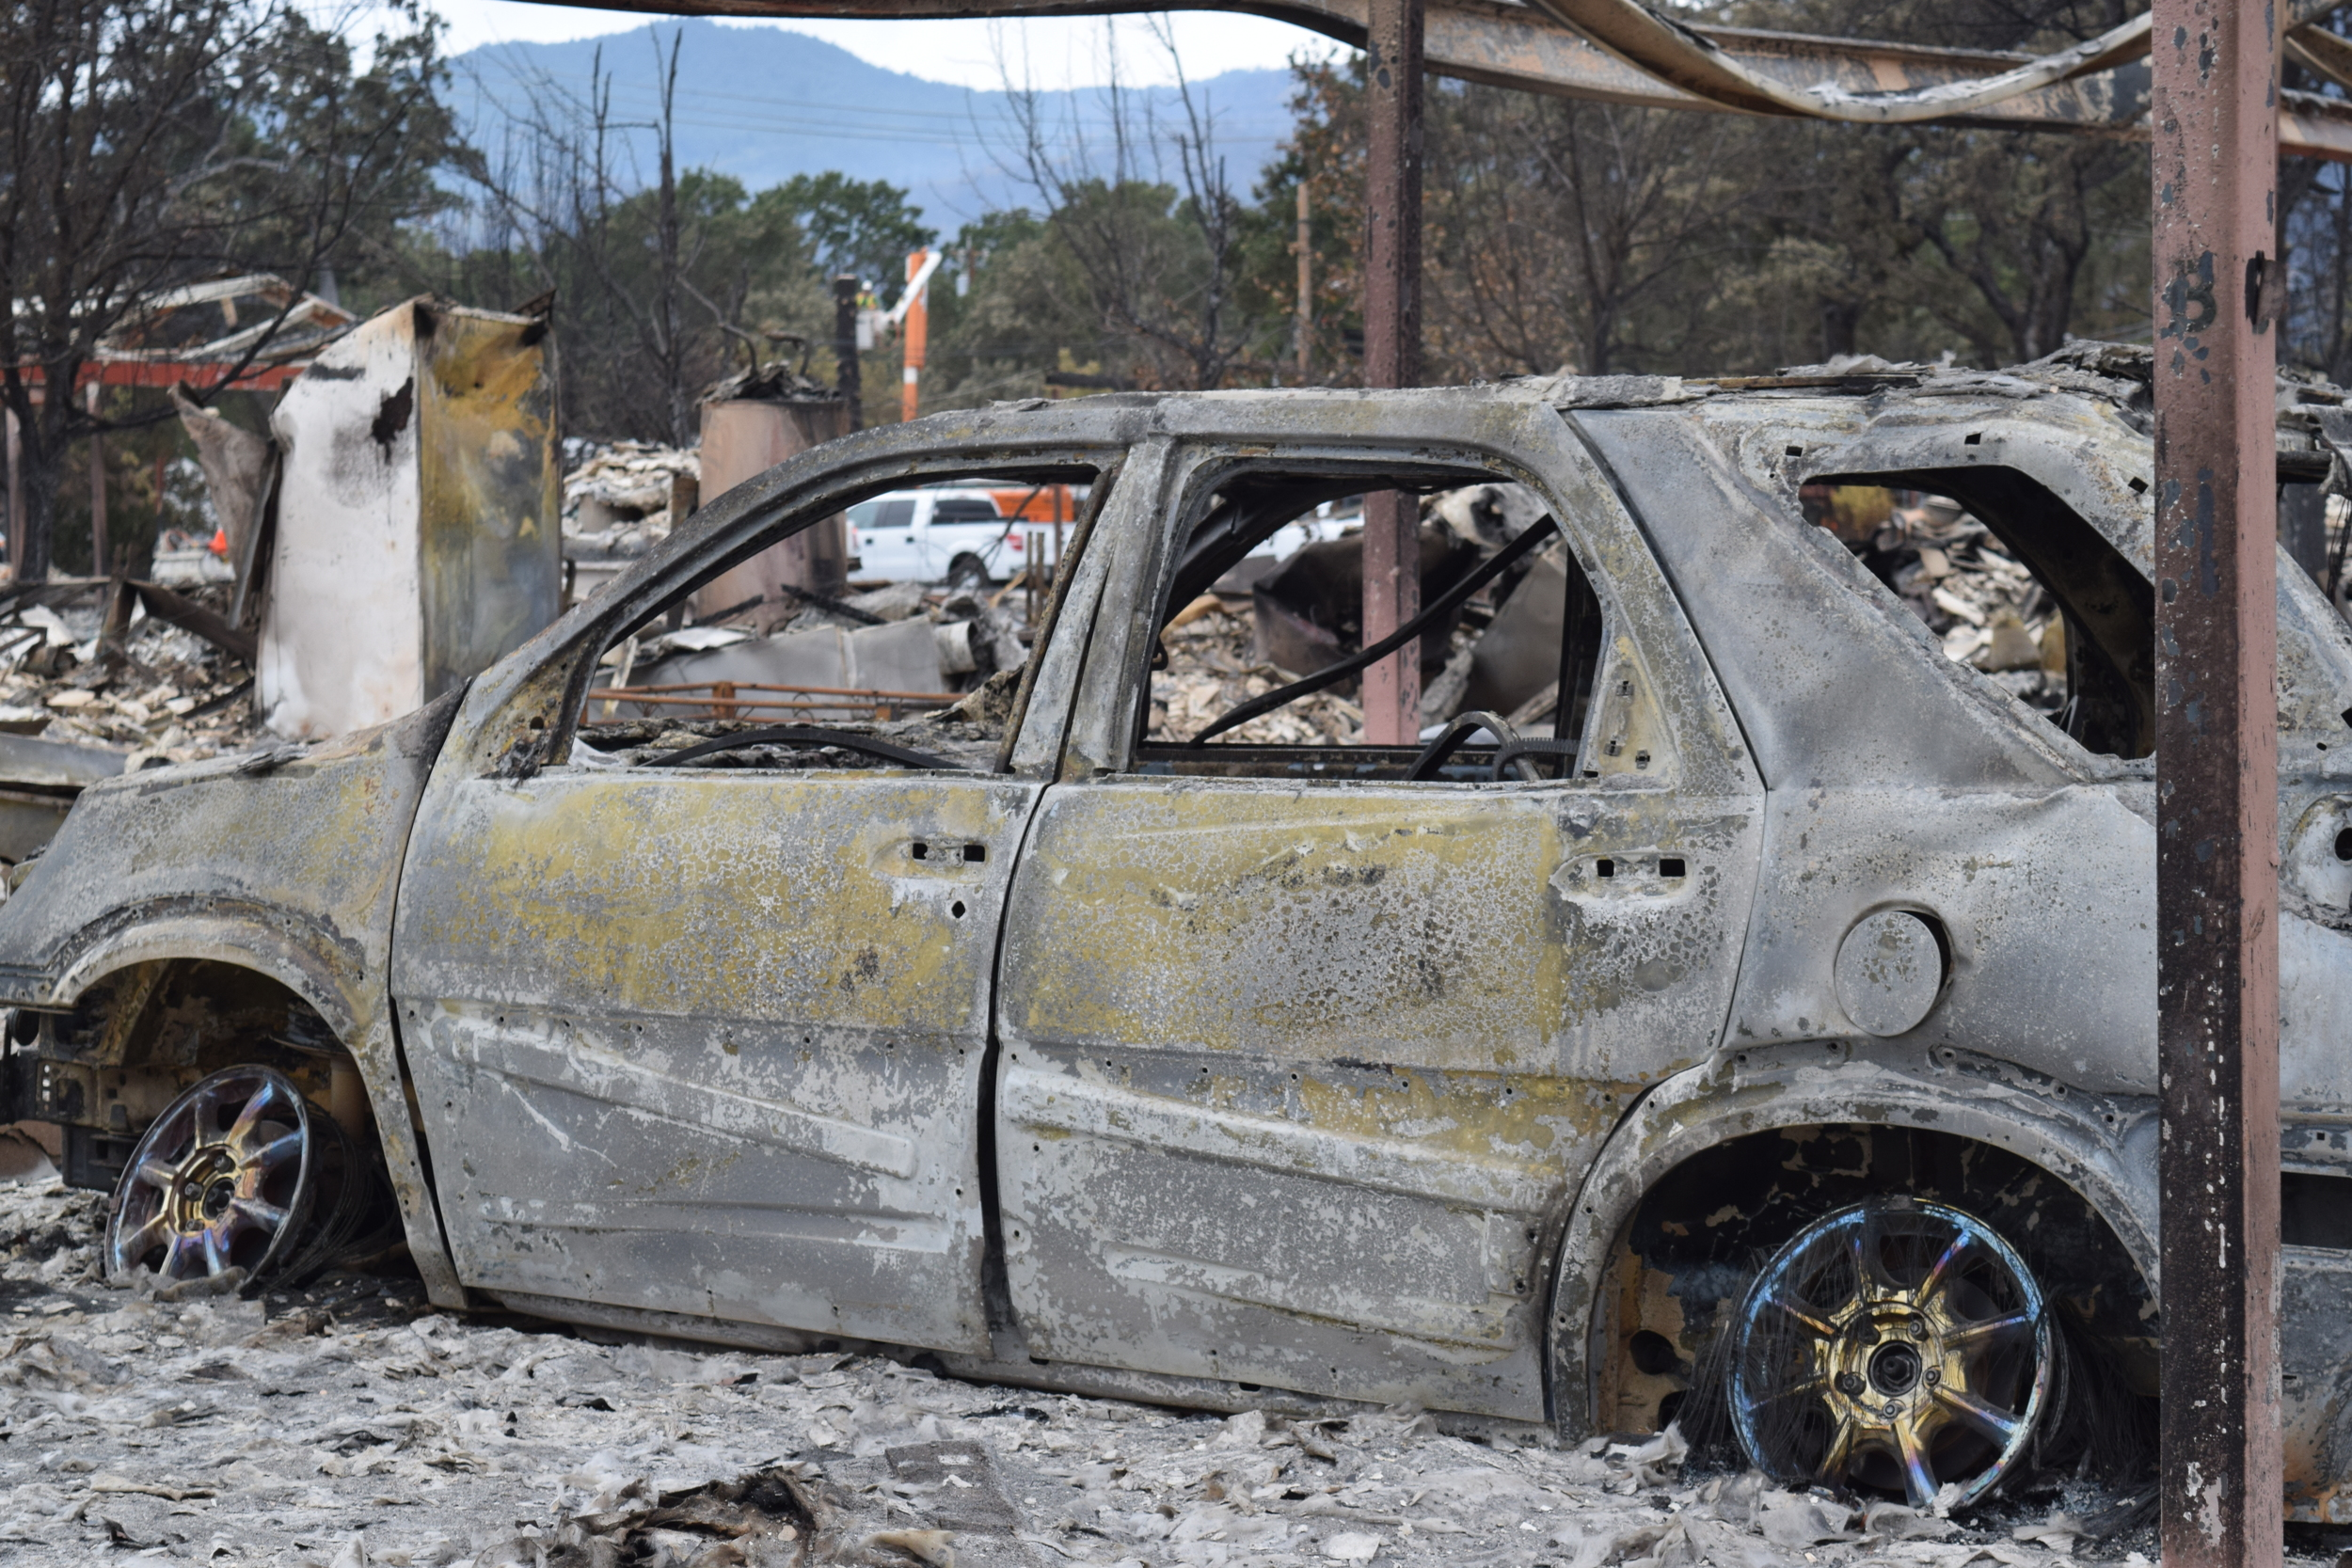 Valley Fire spread fast, kills 4, burns nearly 2000 structures